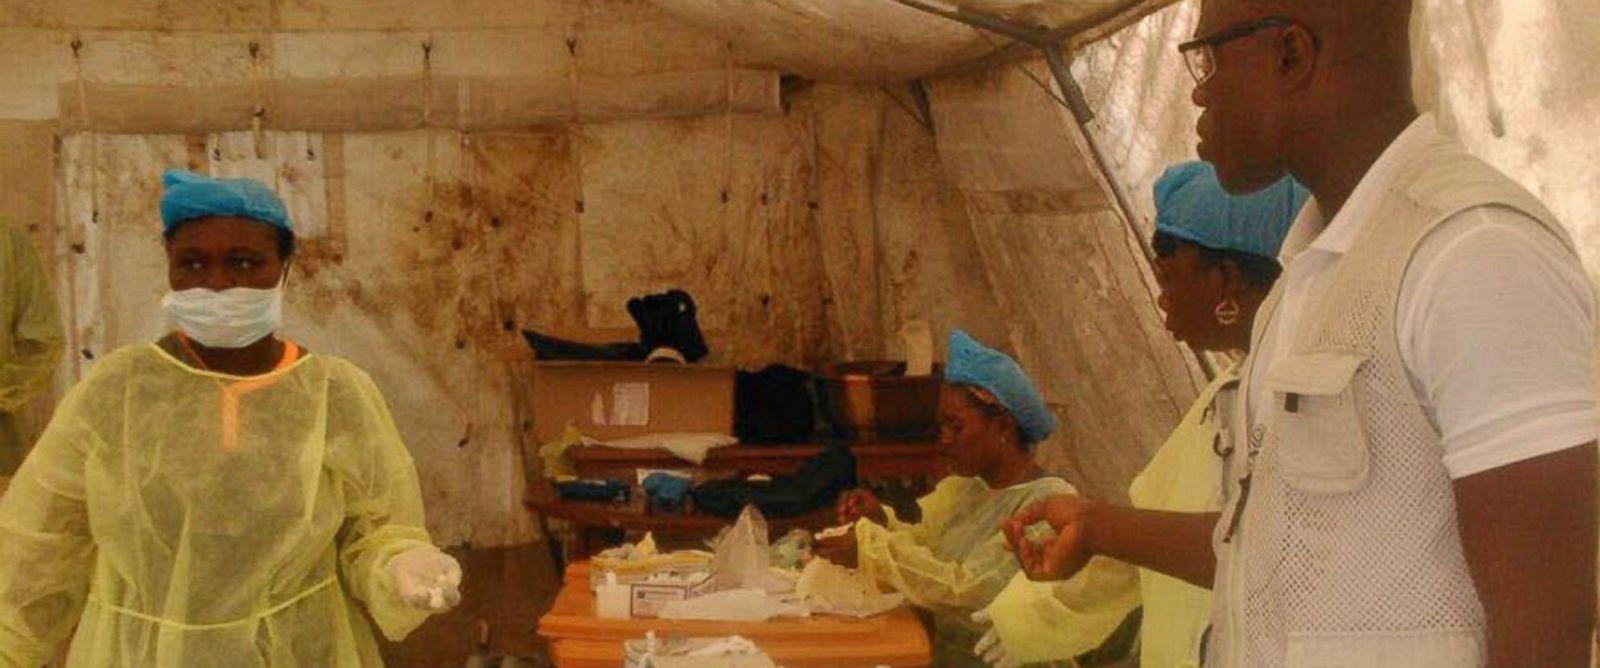 PHOTO: In this photo taken on July 27, 2014, medical personnel work at the Doctors Without Borders facility in Kailahun, Sierra Leone.